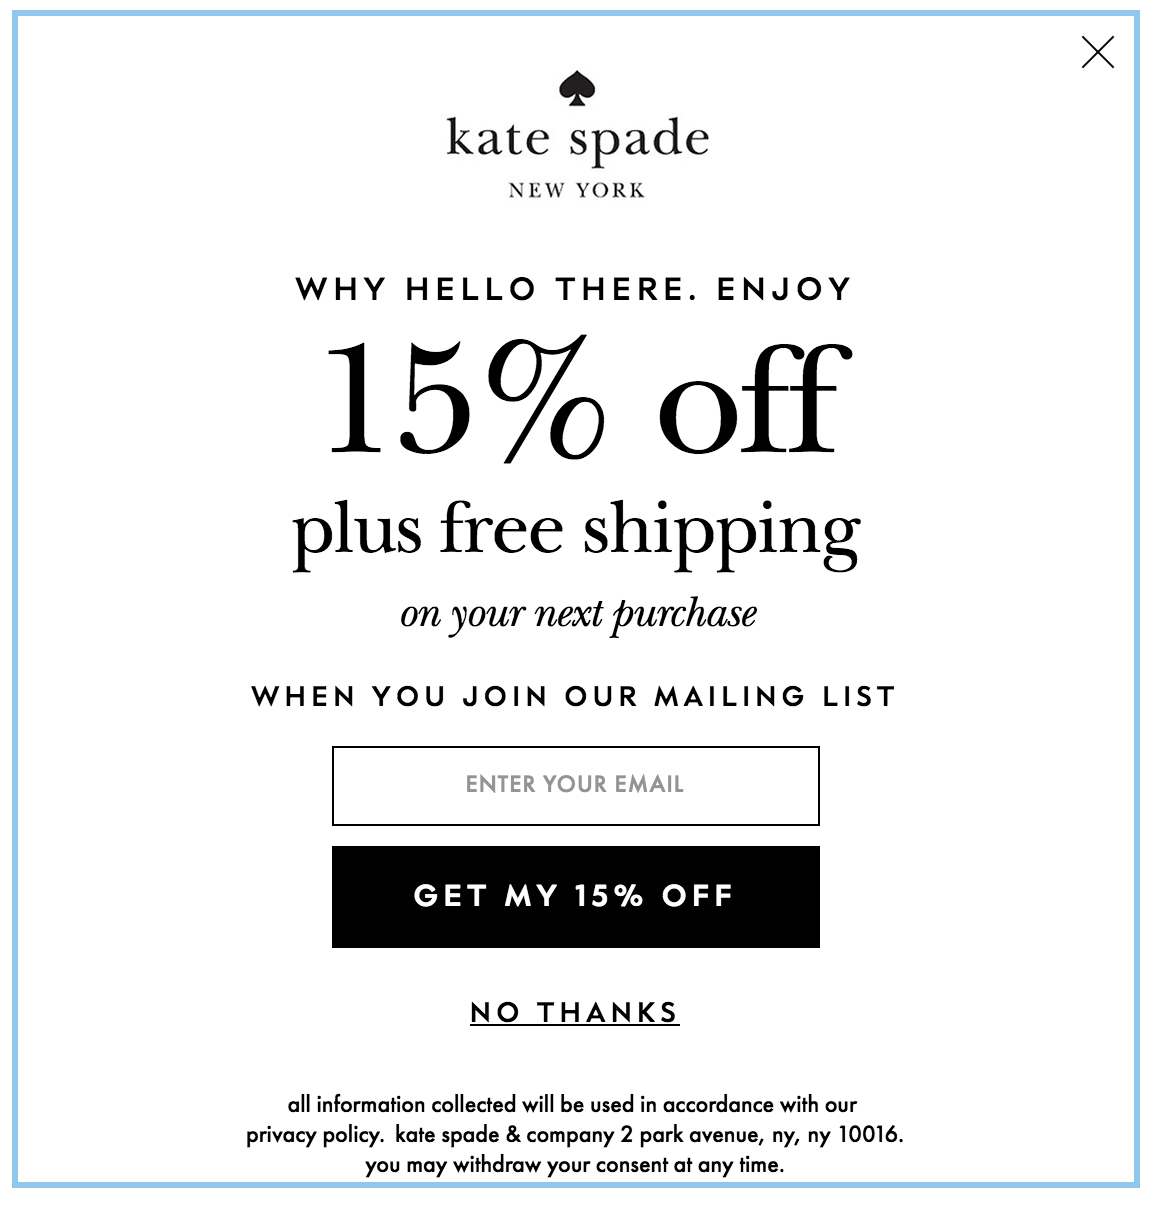 kate spade personalized email